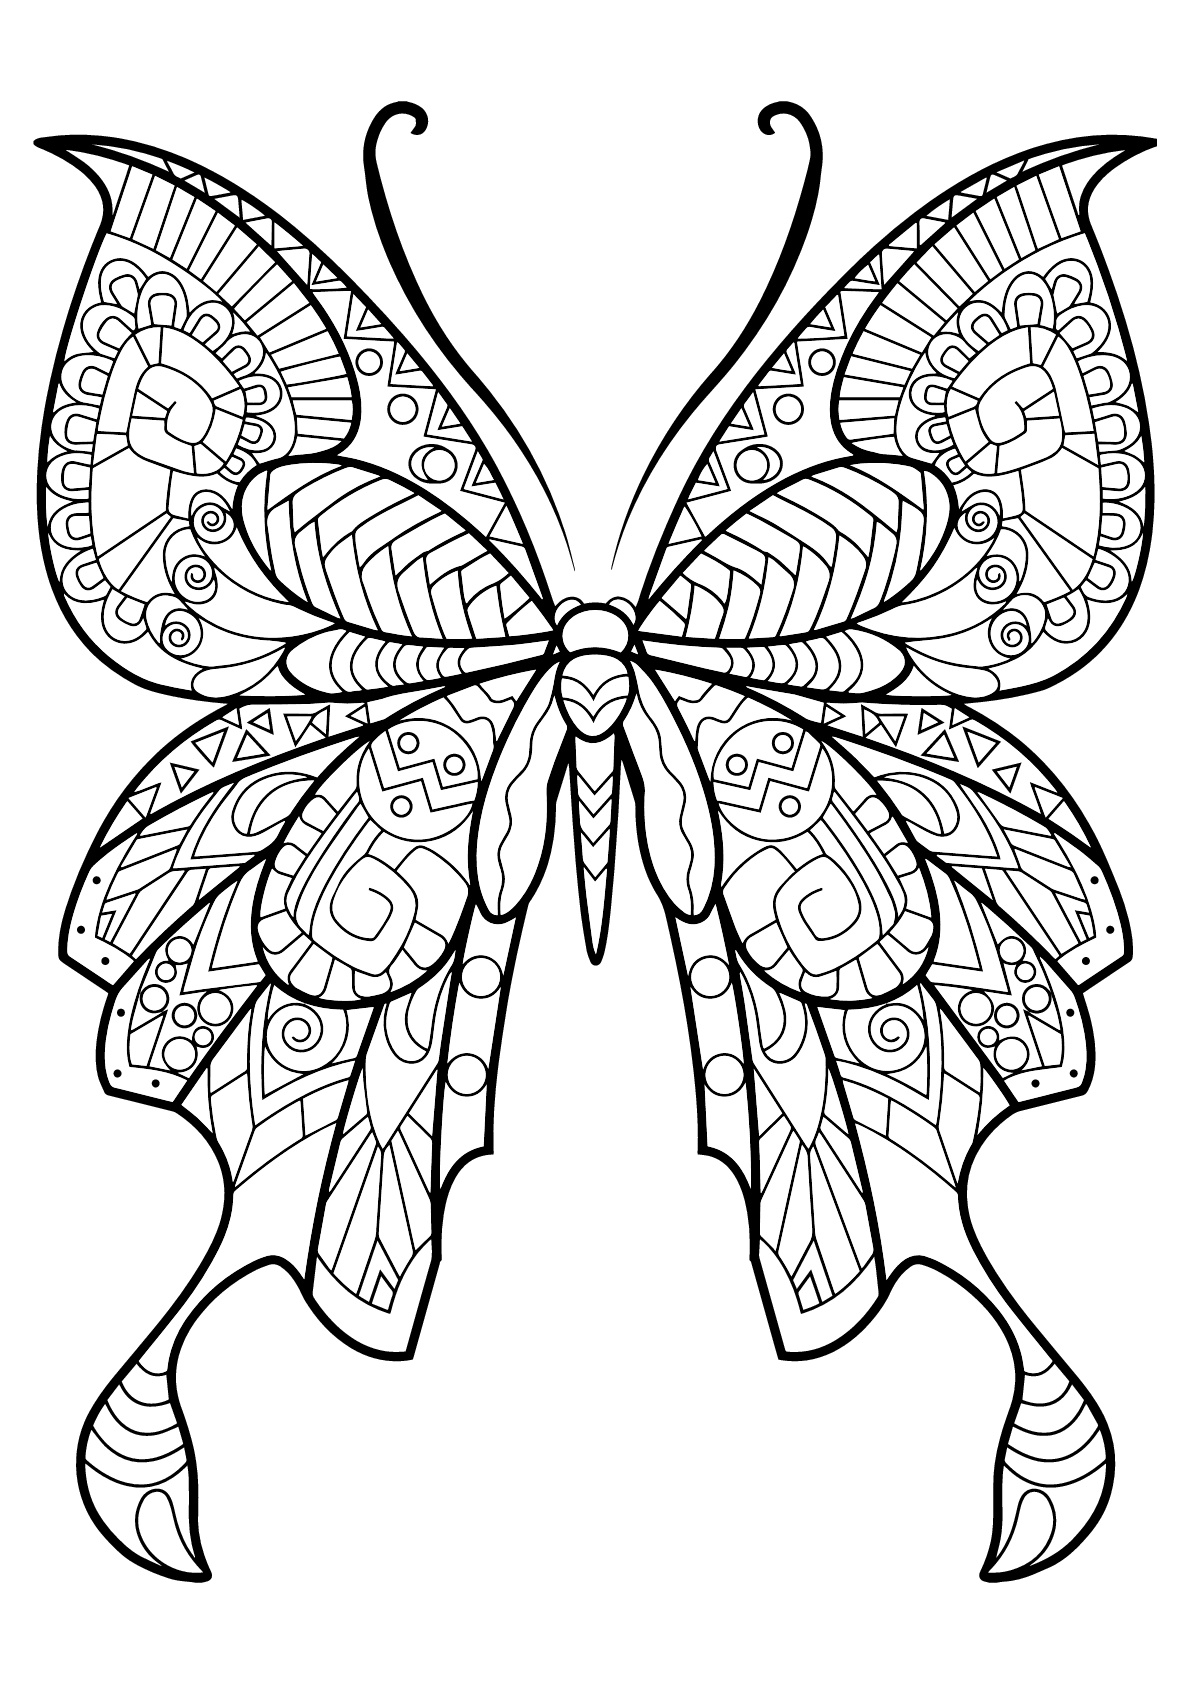 butterfly color page free printable butterfly colouring pages in the playroom butterfly color page